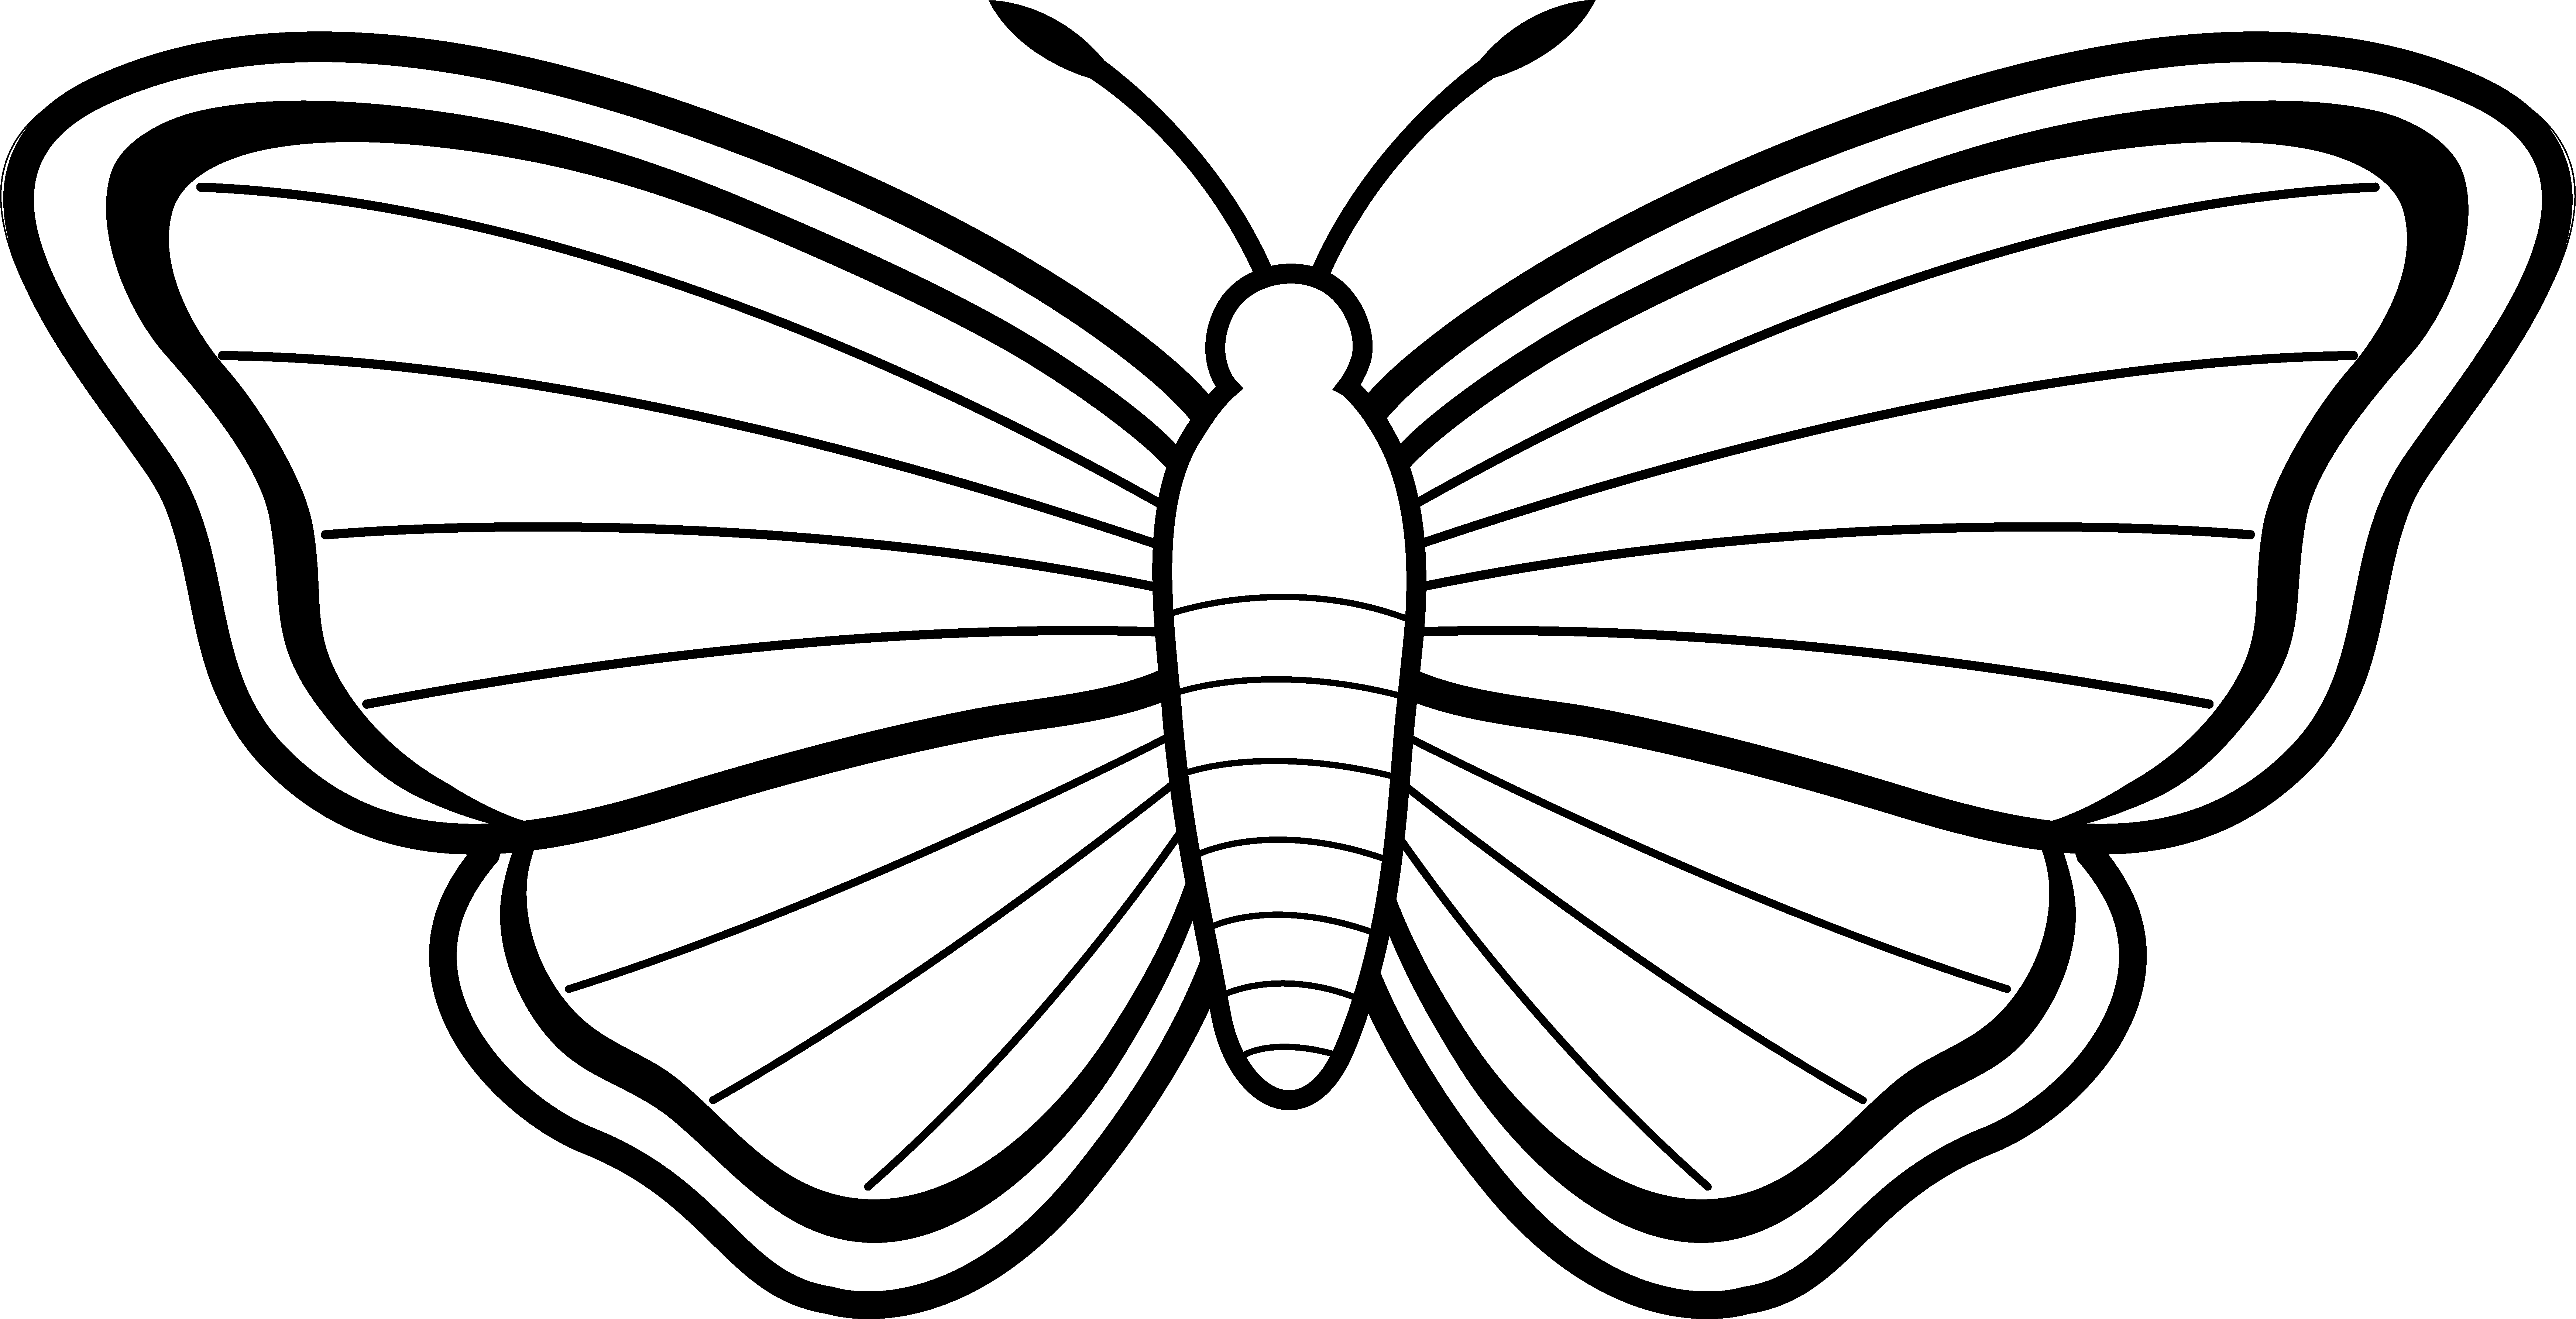 Butterfly outline drawing. Clipart panda free images